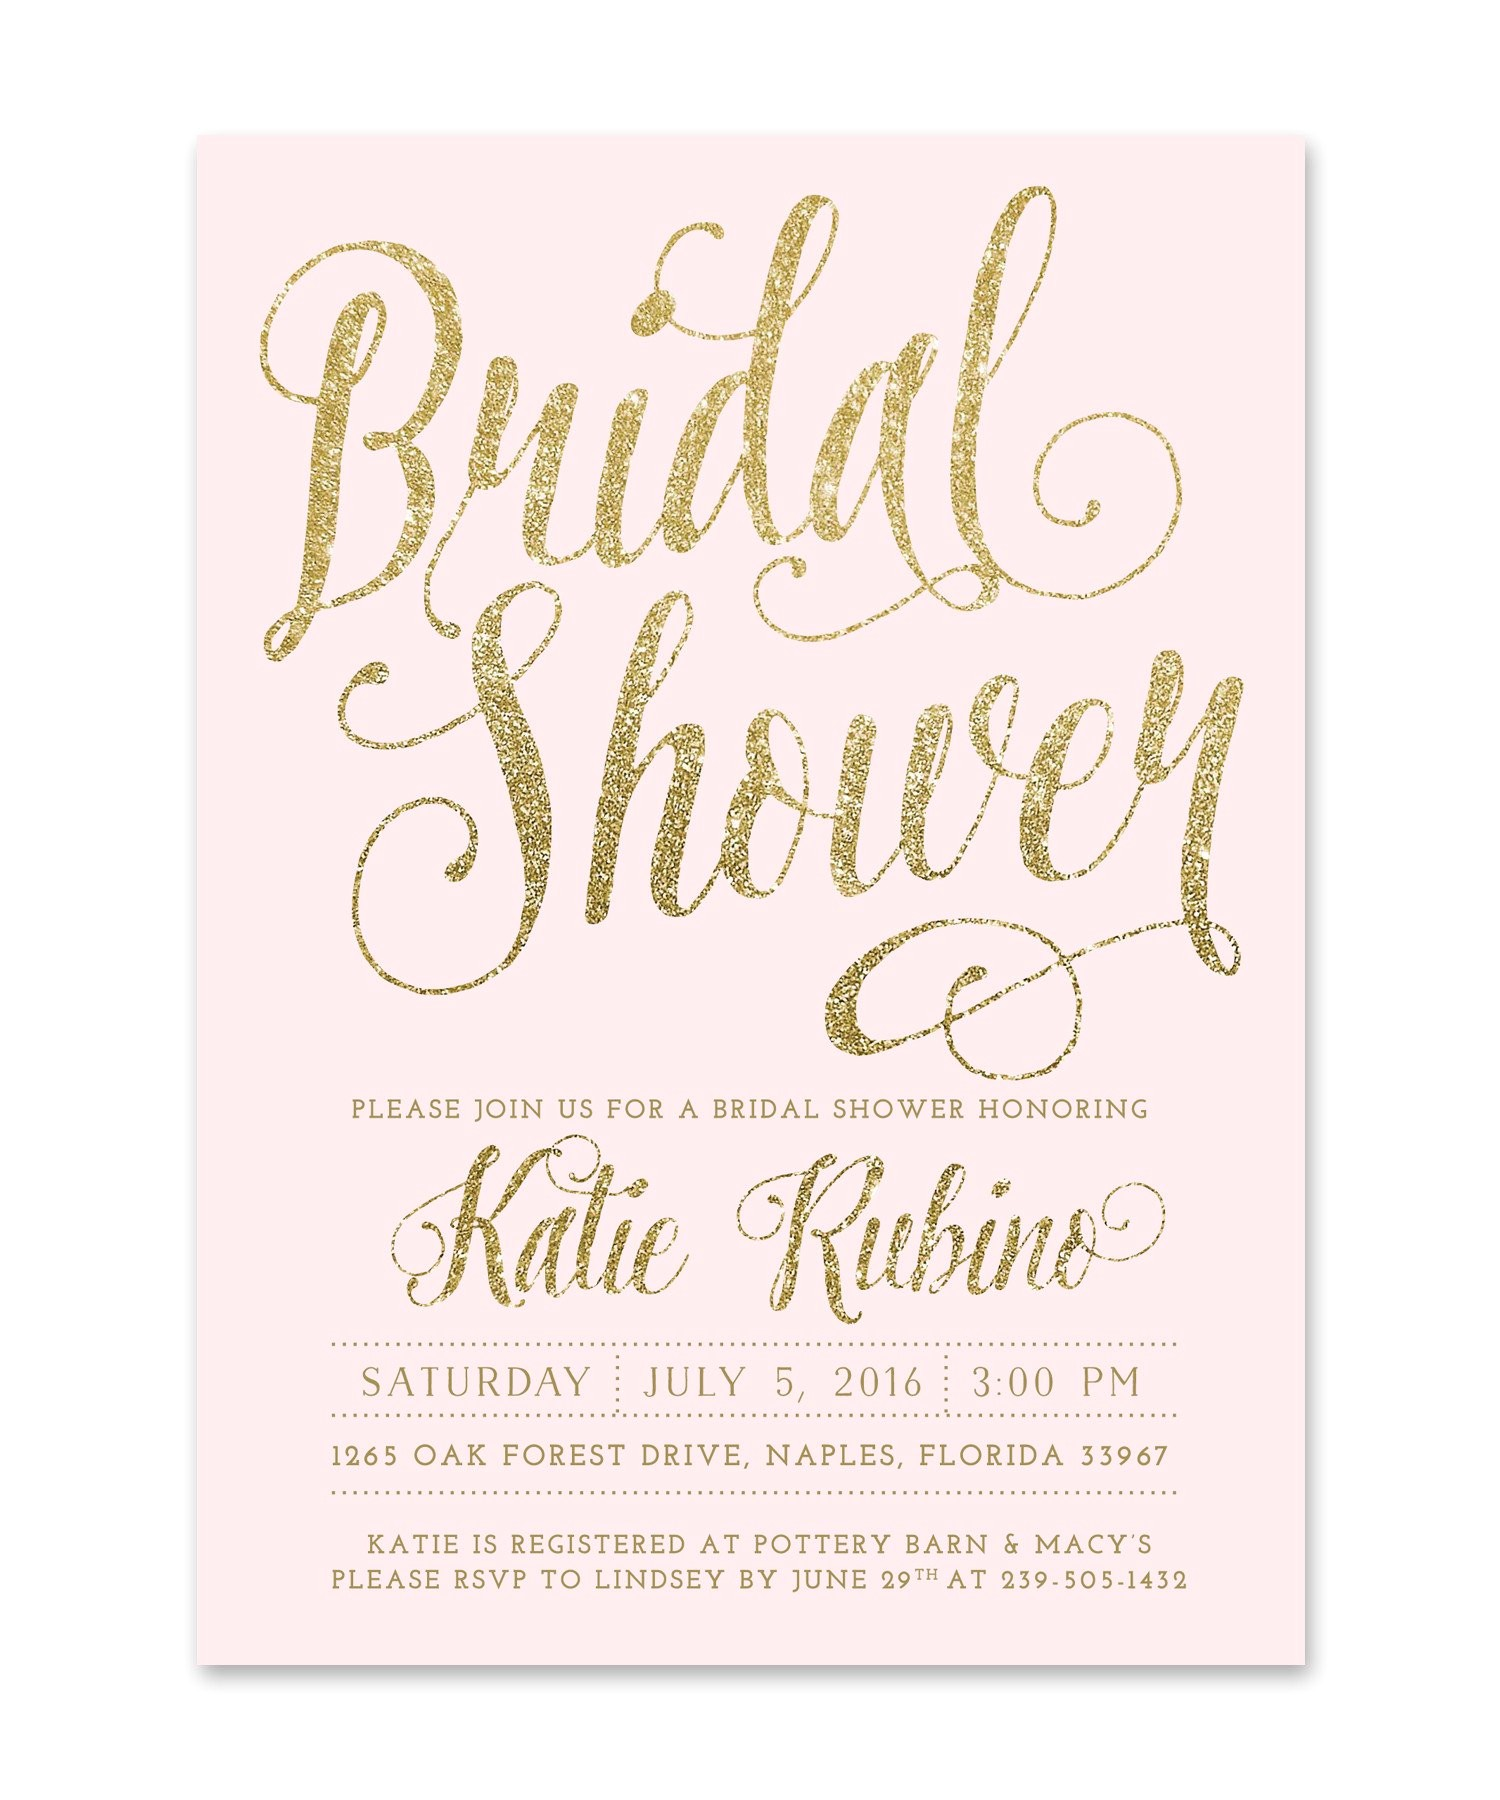 text for bridal shower invitation